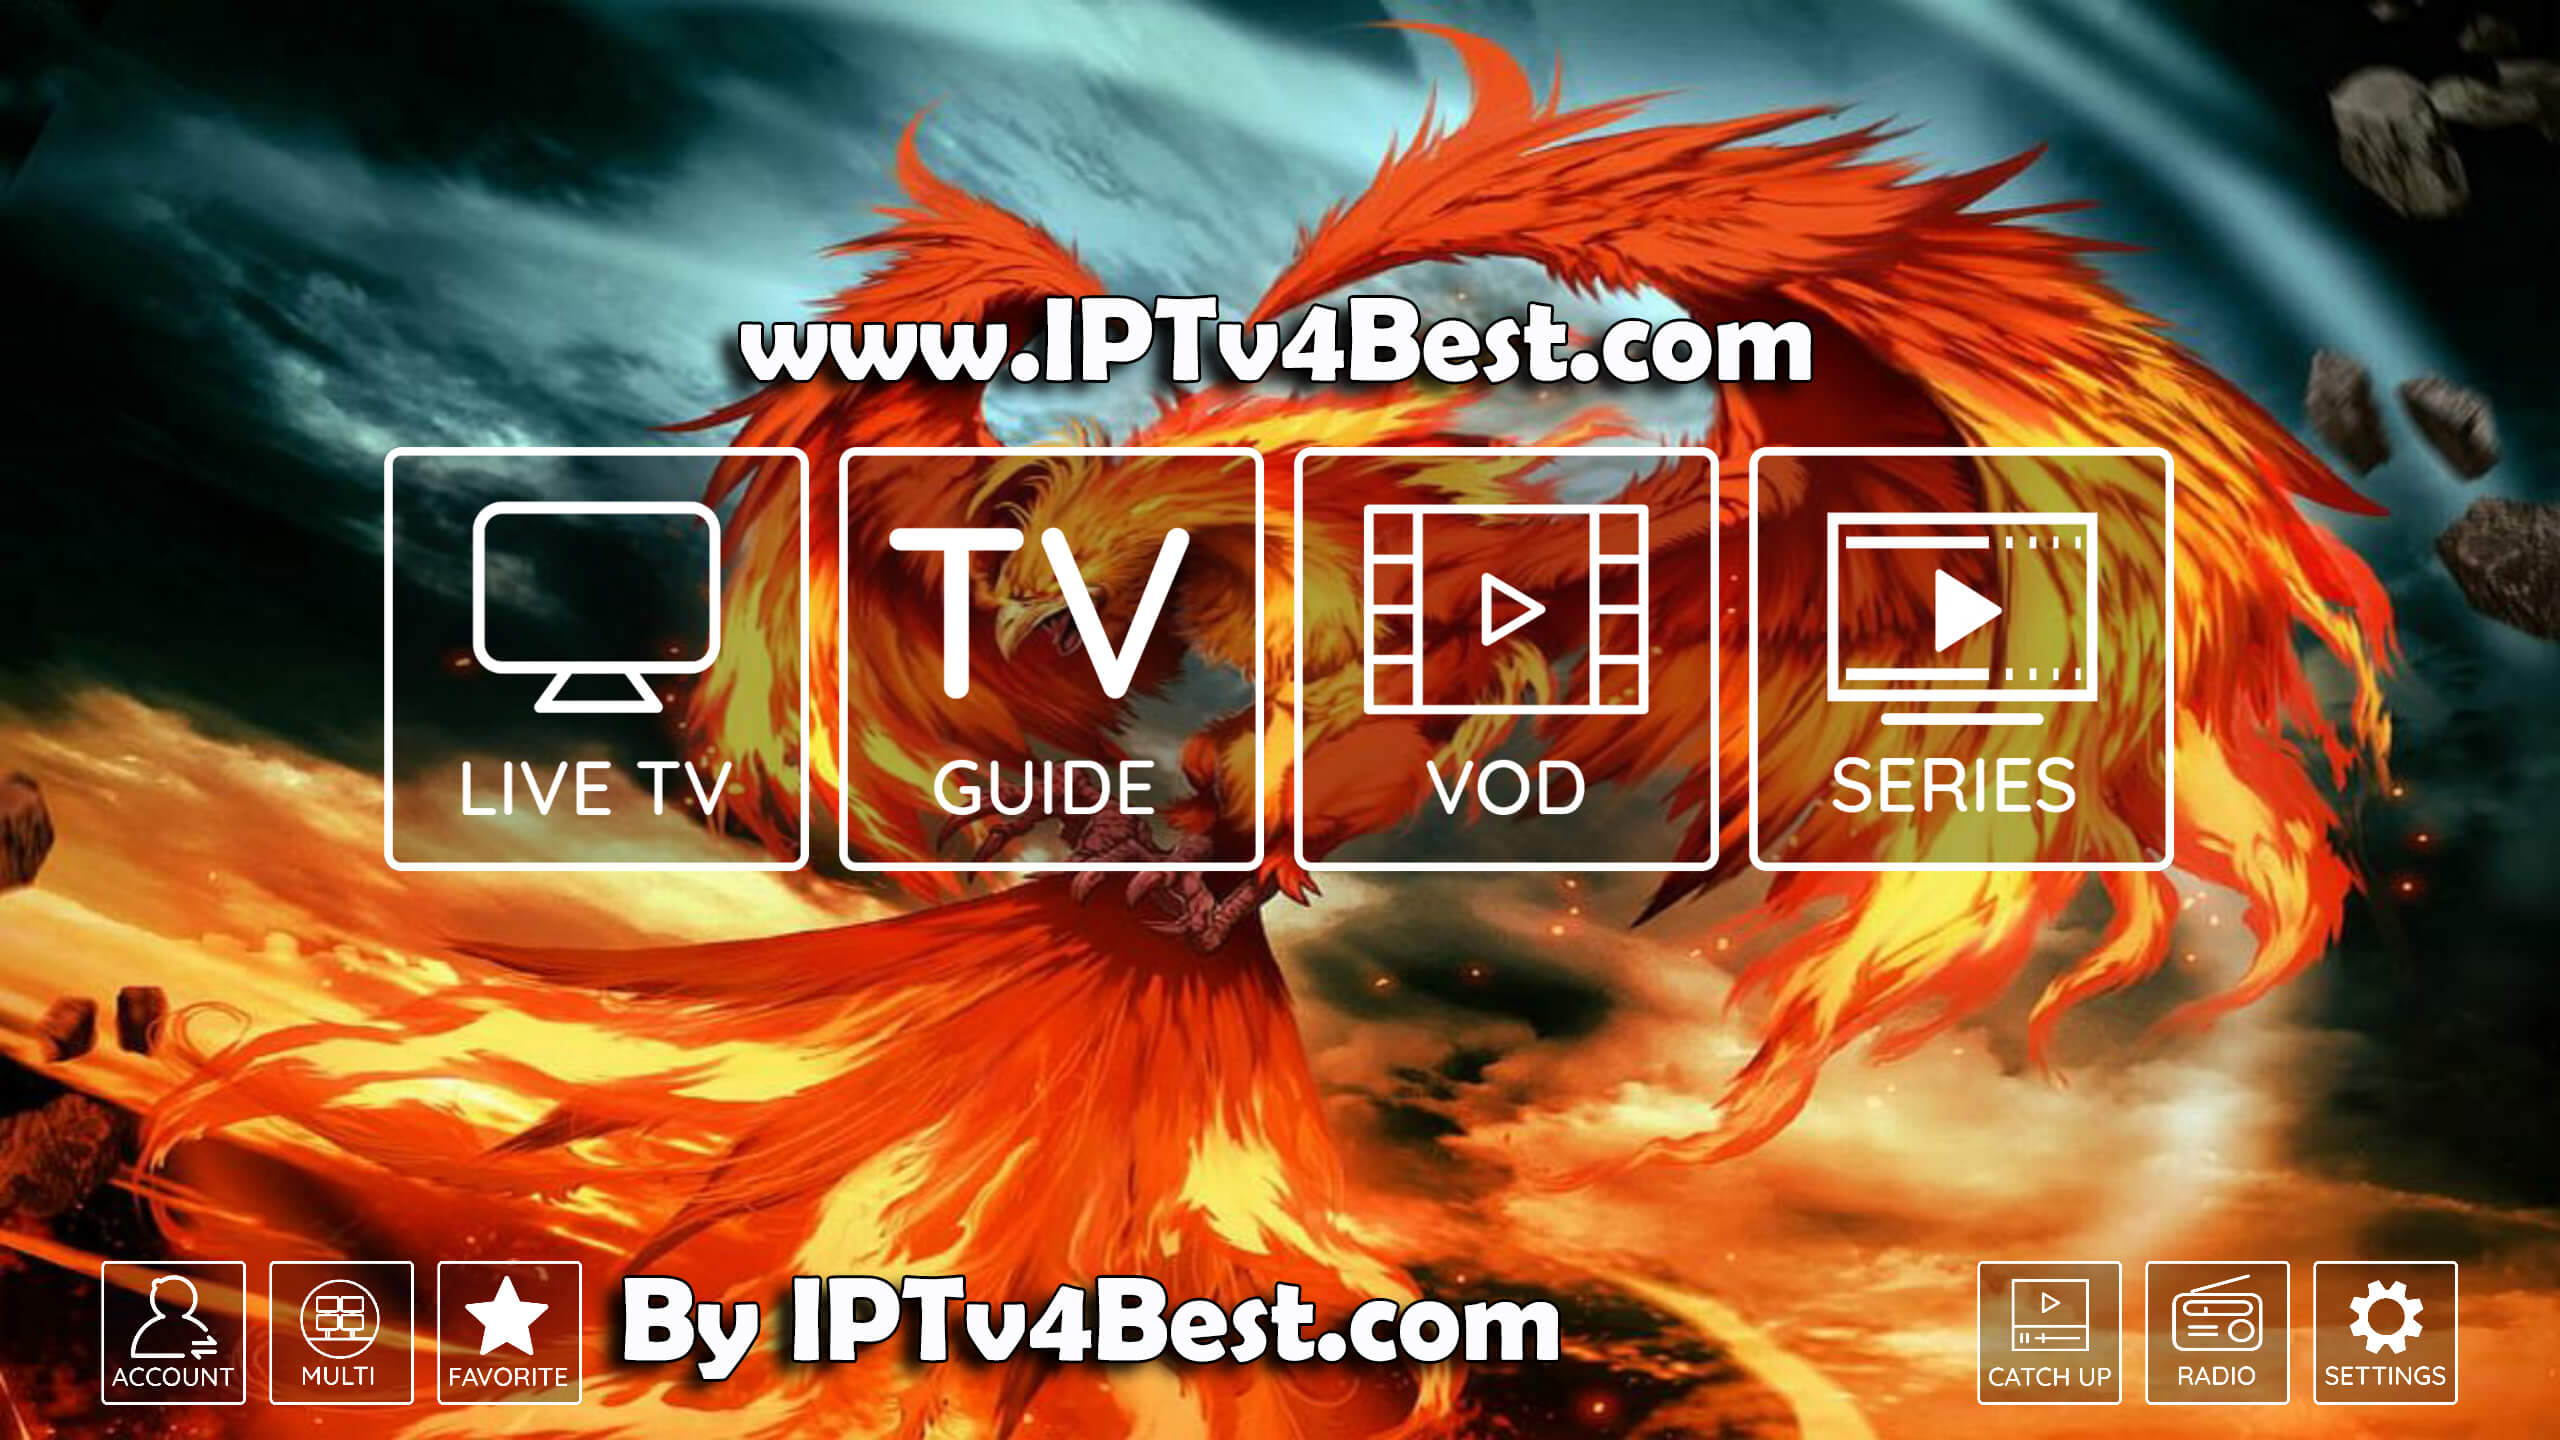 Download VIP IPTv Pro + Activation Codes By IPTV4BEST.COM